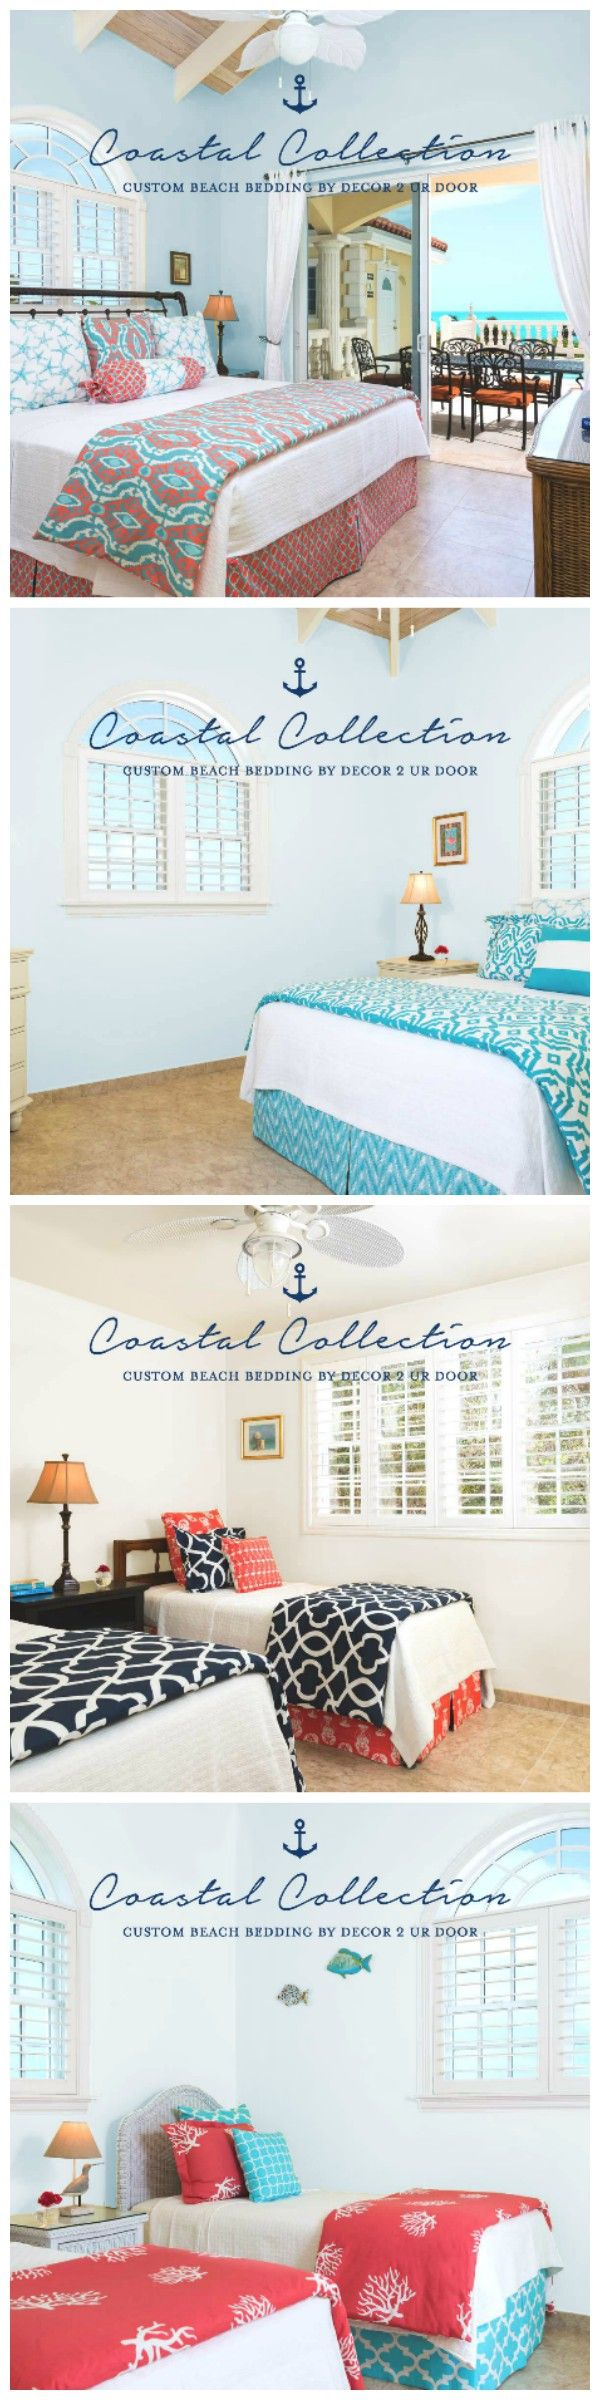 Coastal bedding and décor. Decorating a beach home or beach condo? Nautical and coastal fabrics and patterns will bring the ocean to you. Custom made bedding and accessories for your beach house. Available in all bed sizes.